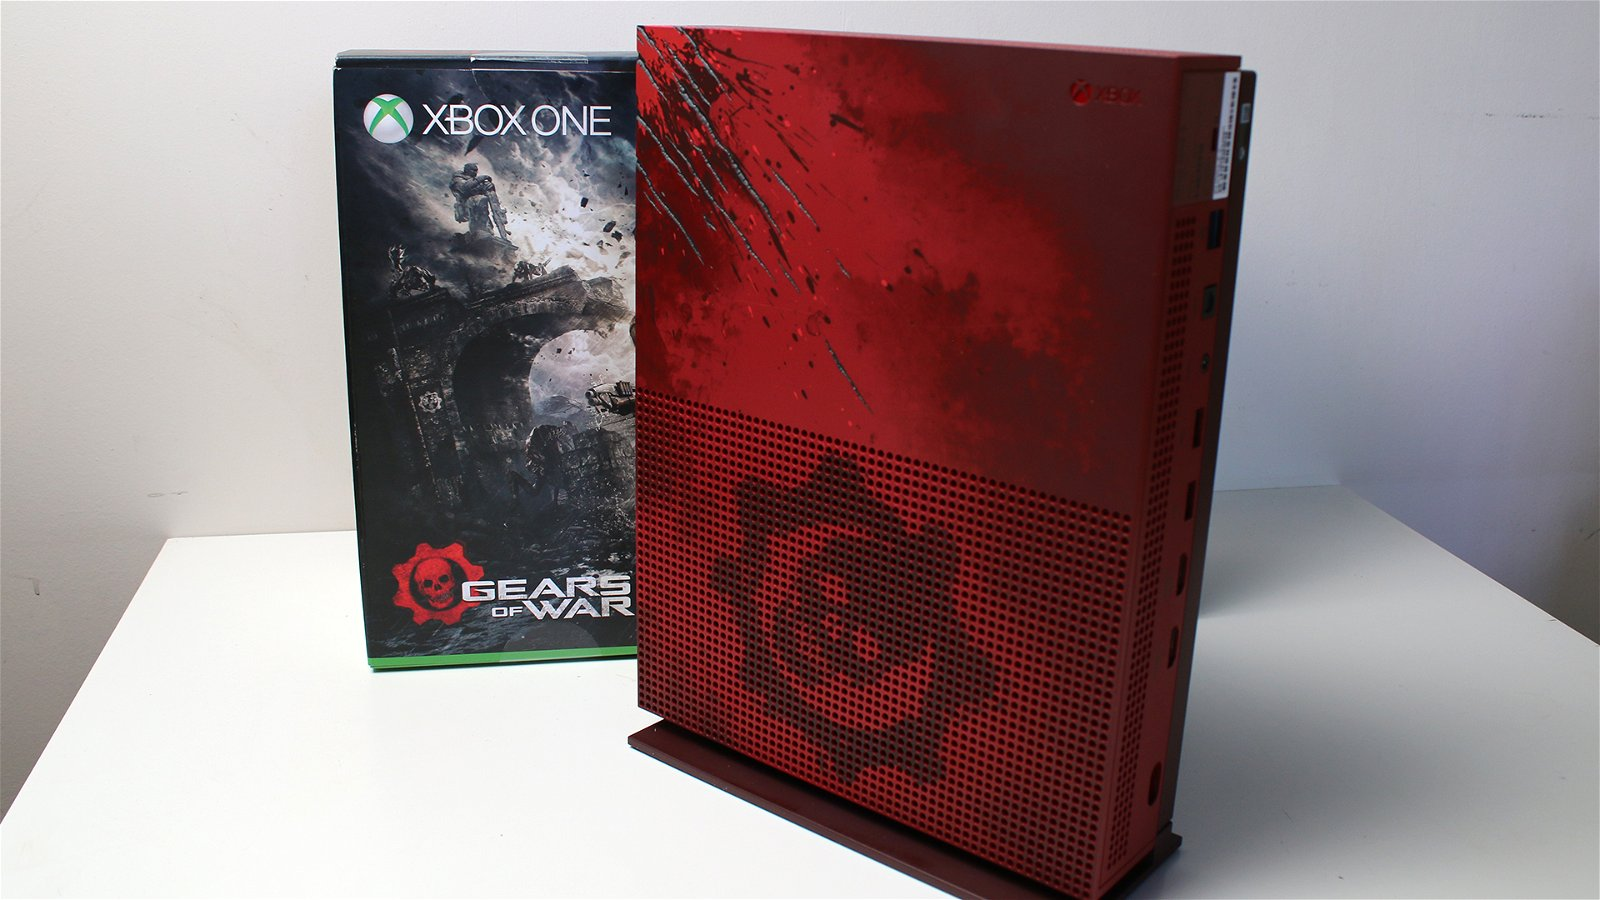 Unboxing the Gears of War 4 Xbox One S 8